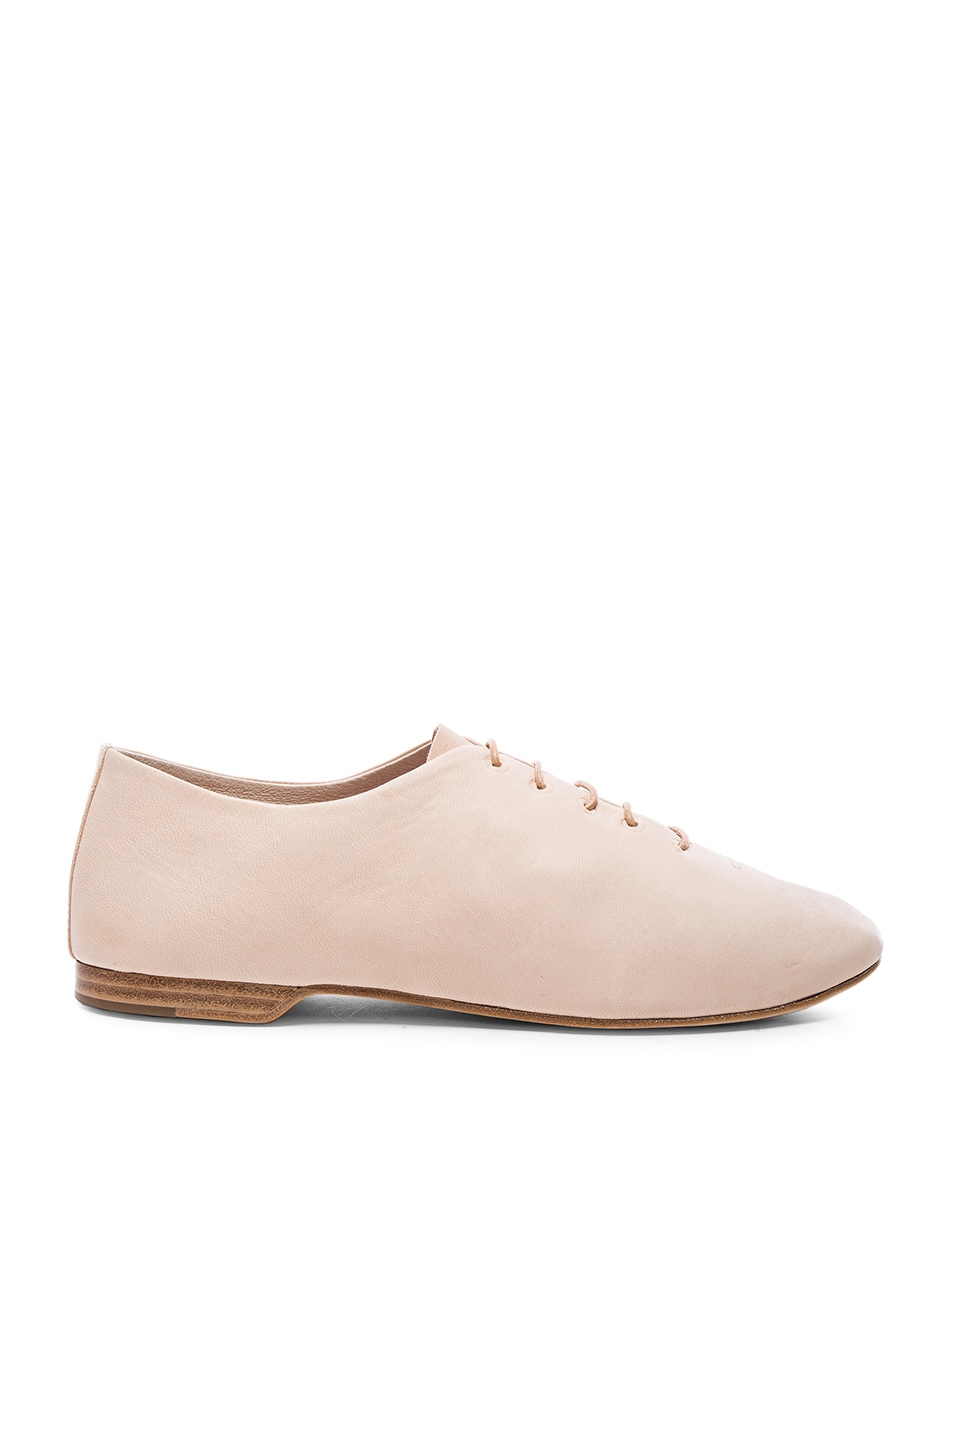 Image 2 of Hender Scheme Manual Industrial Product 13 in Natural